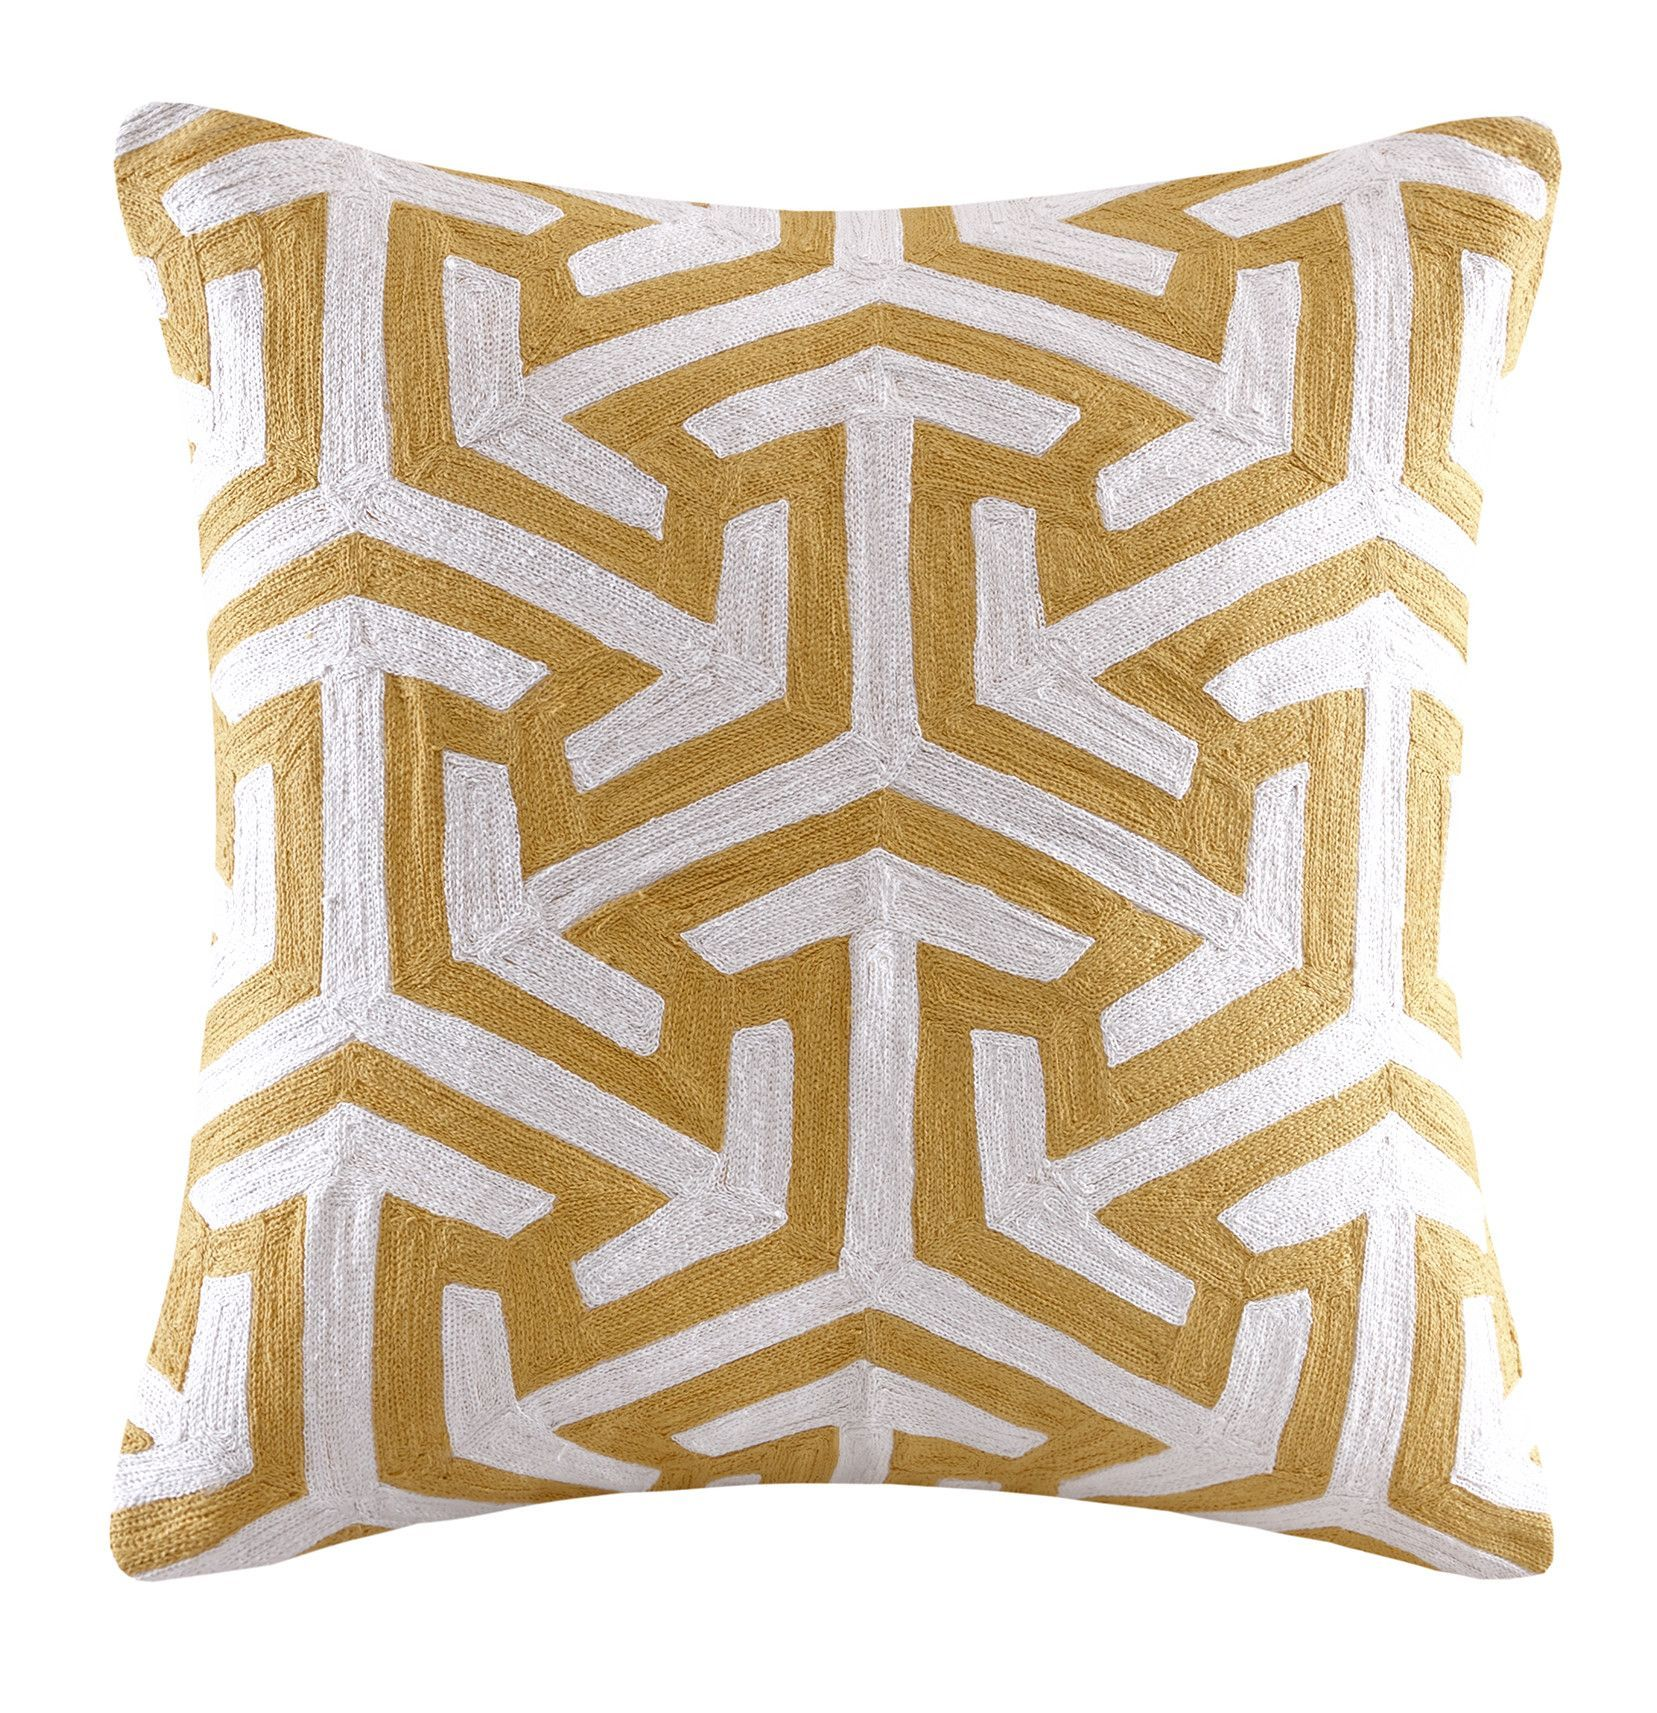 Bourg Crewel Embroidered Square Cotton Throw Pillow